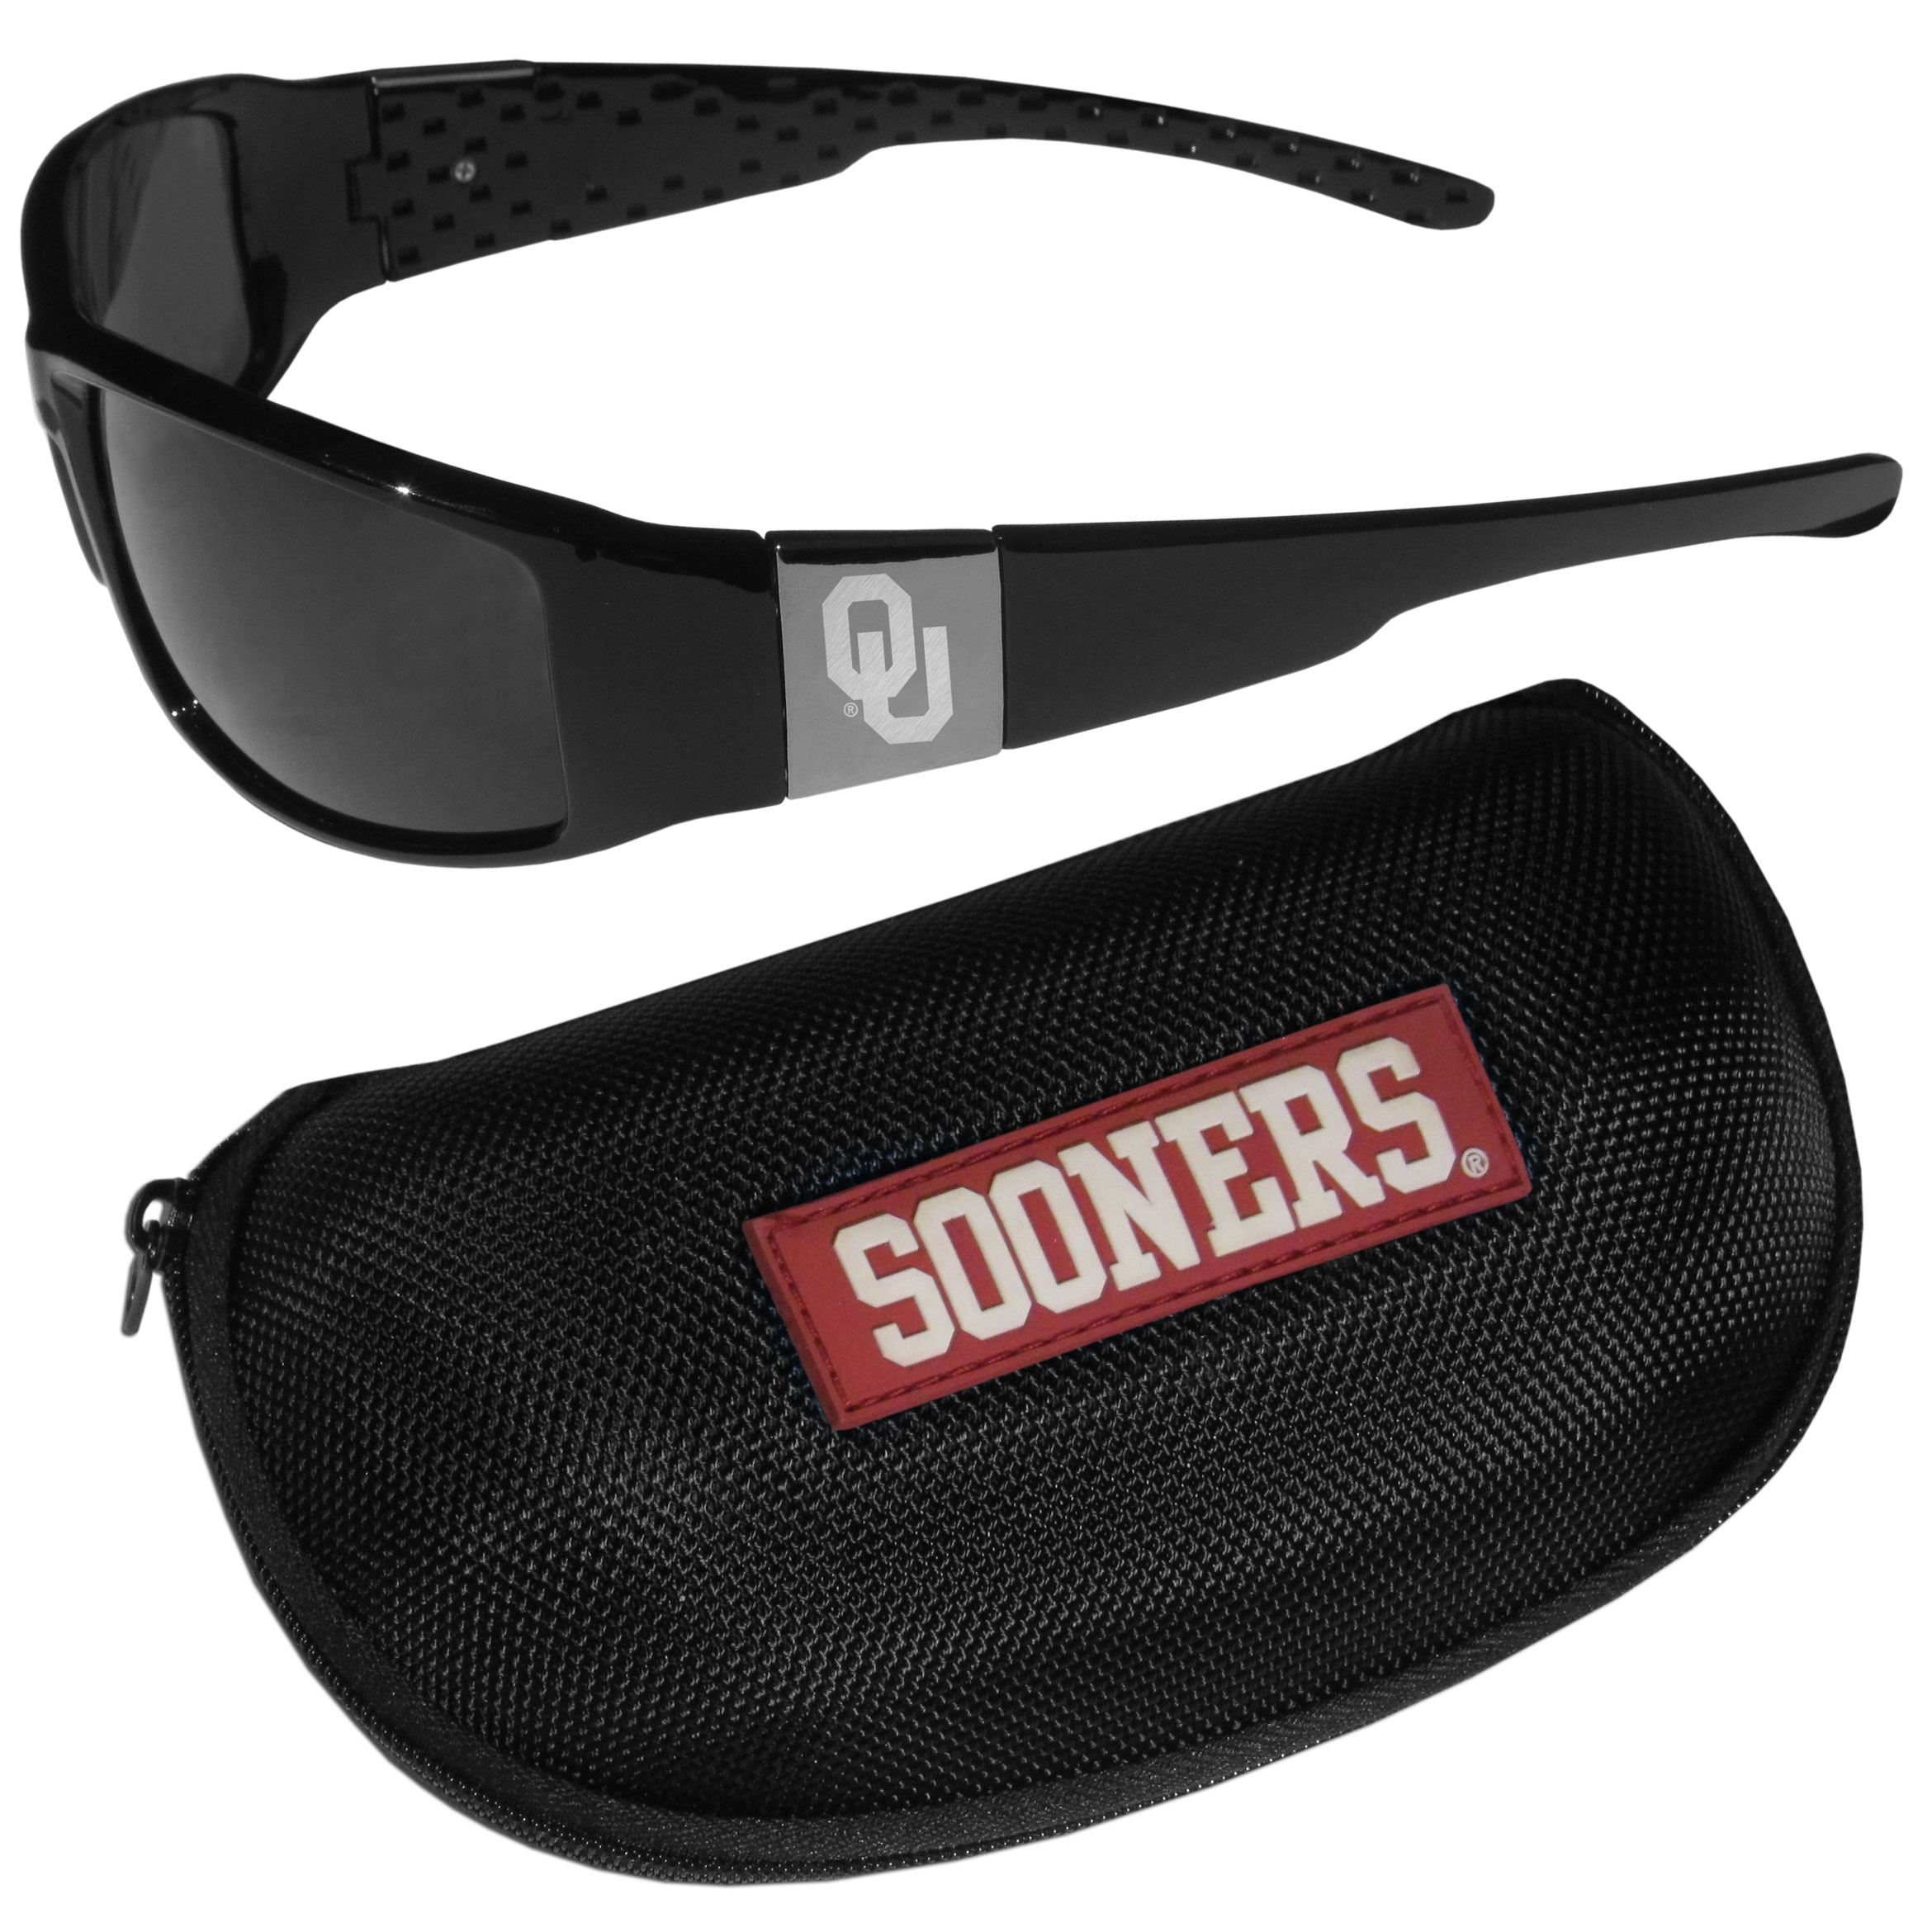 Oklahoma Sooners Chrome Wrap Sunglasses and Zippered Carrying Case - These designer inspired frames have a sleek look in all black with high-polish chrome Oklahoma Sooners shields on each arm with an etched logo. The shades are perfect any outdoor activity like; golfing, driving, hiking, fishing or cheering on the team at a tailgating event or an at home game day BBQ with a lens rating of 100% UVA/UVB for maximum UV protection. The high-quality frames are as durable as they are fashionable and with their classic look they are perfect fan accessory that can be worn everyday for every occasion. The shades come with a zippered hard shell case to keep your sunglasses safe.